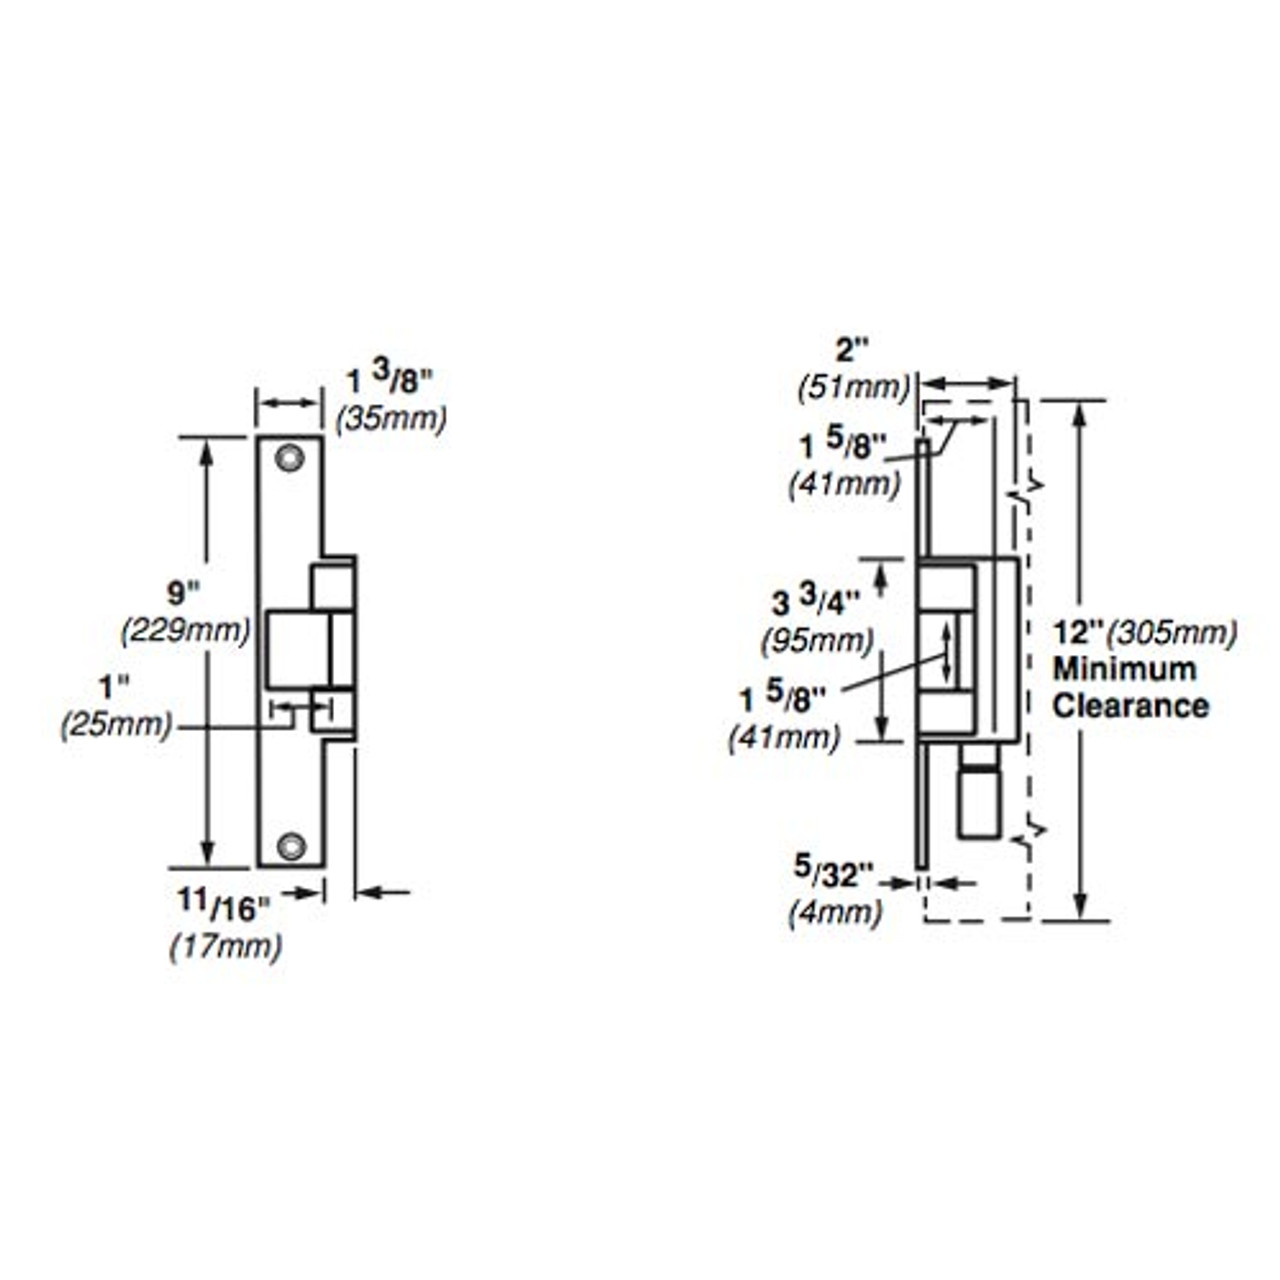 6214-FS-DS-12VDC-US32 Von Duprin Electric Strike for Mortise or Cylindrical Locksets in Bright Stainless Steel Finish